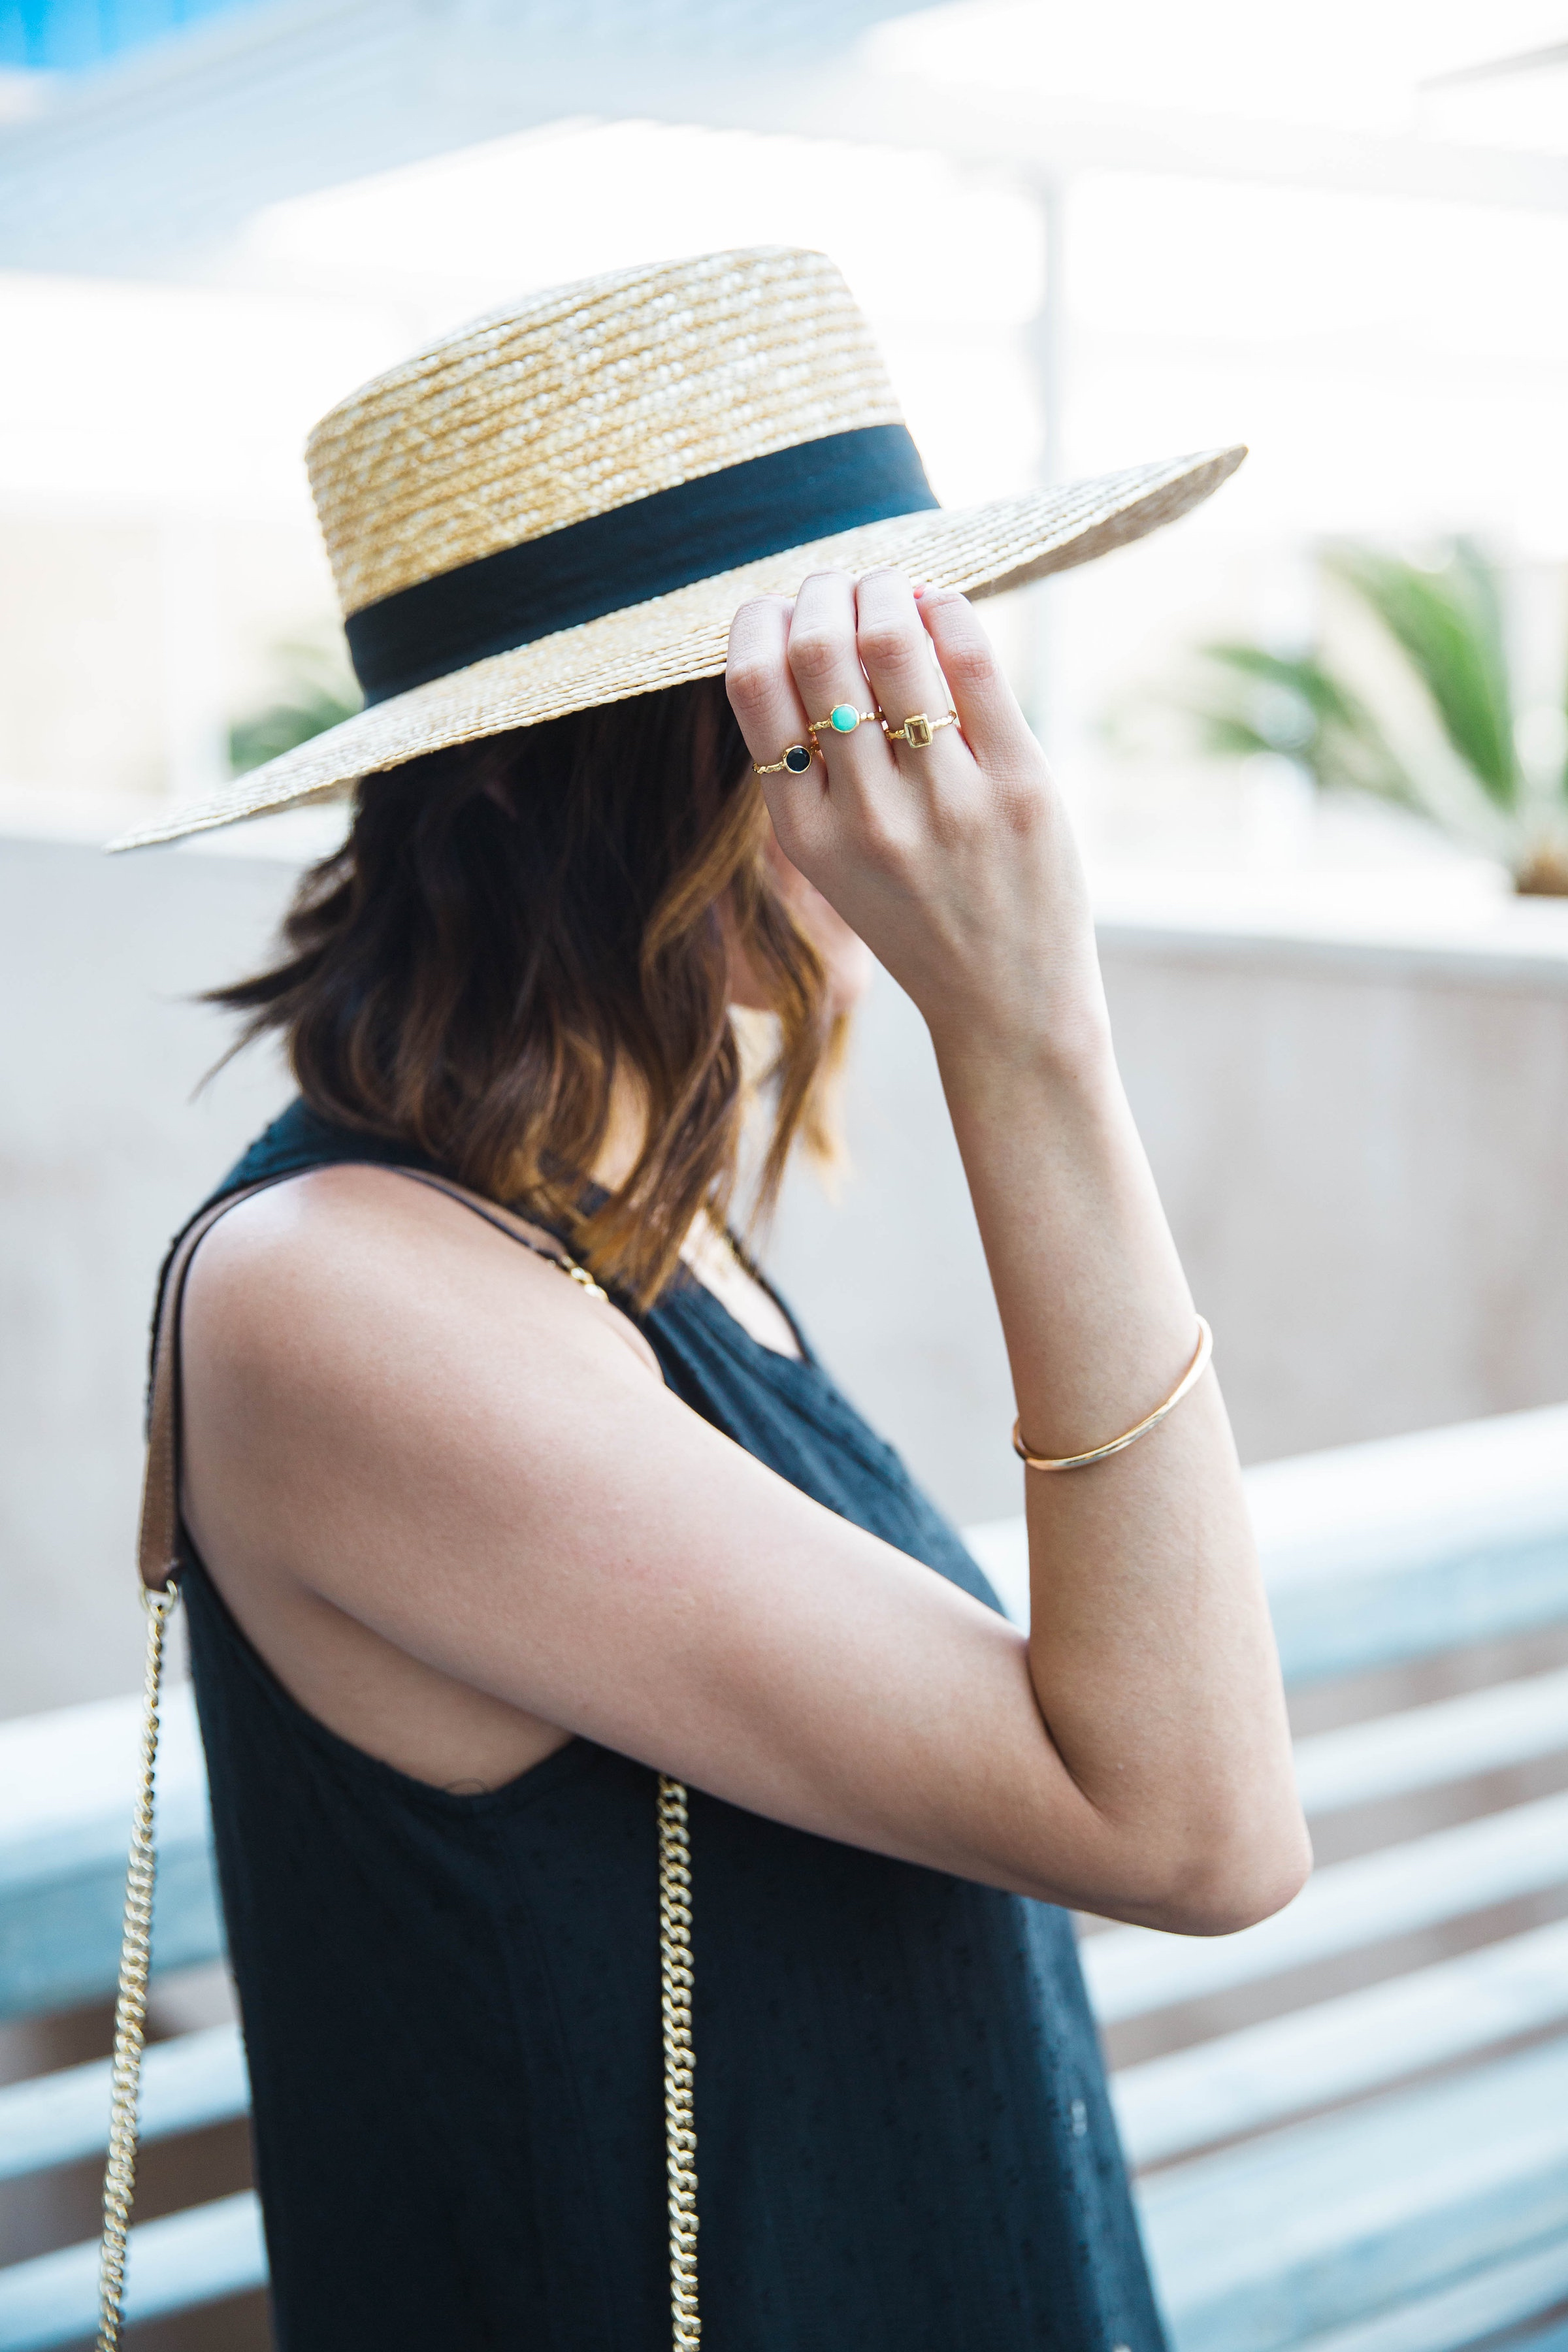 Dainty rings and boater hat